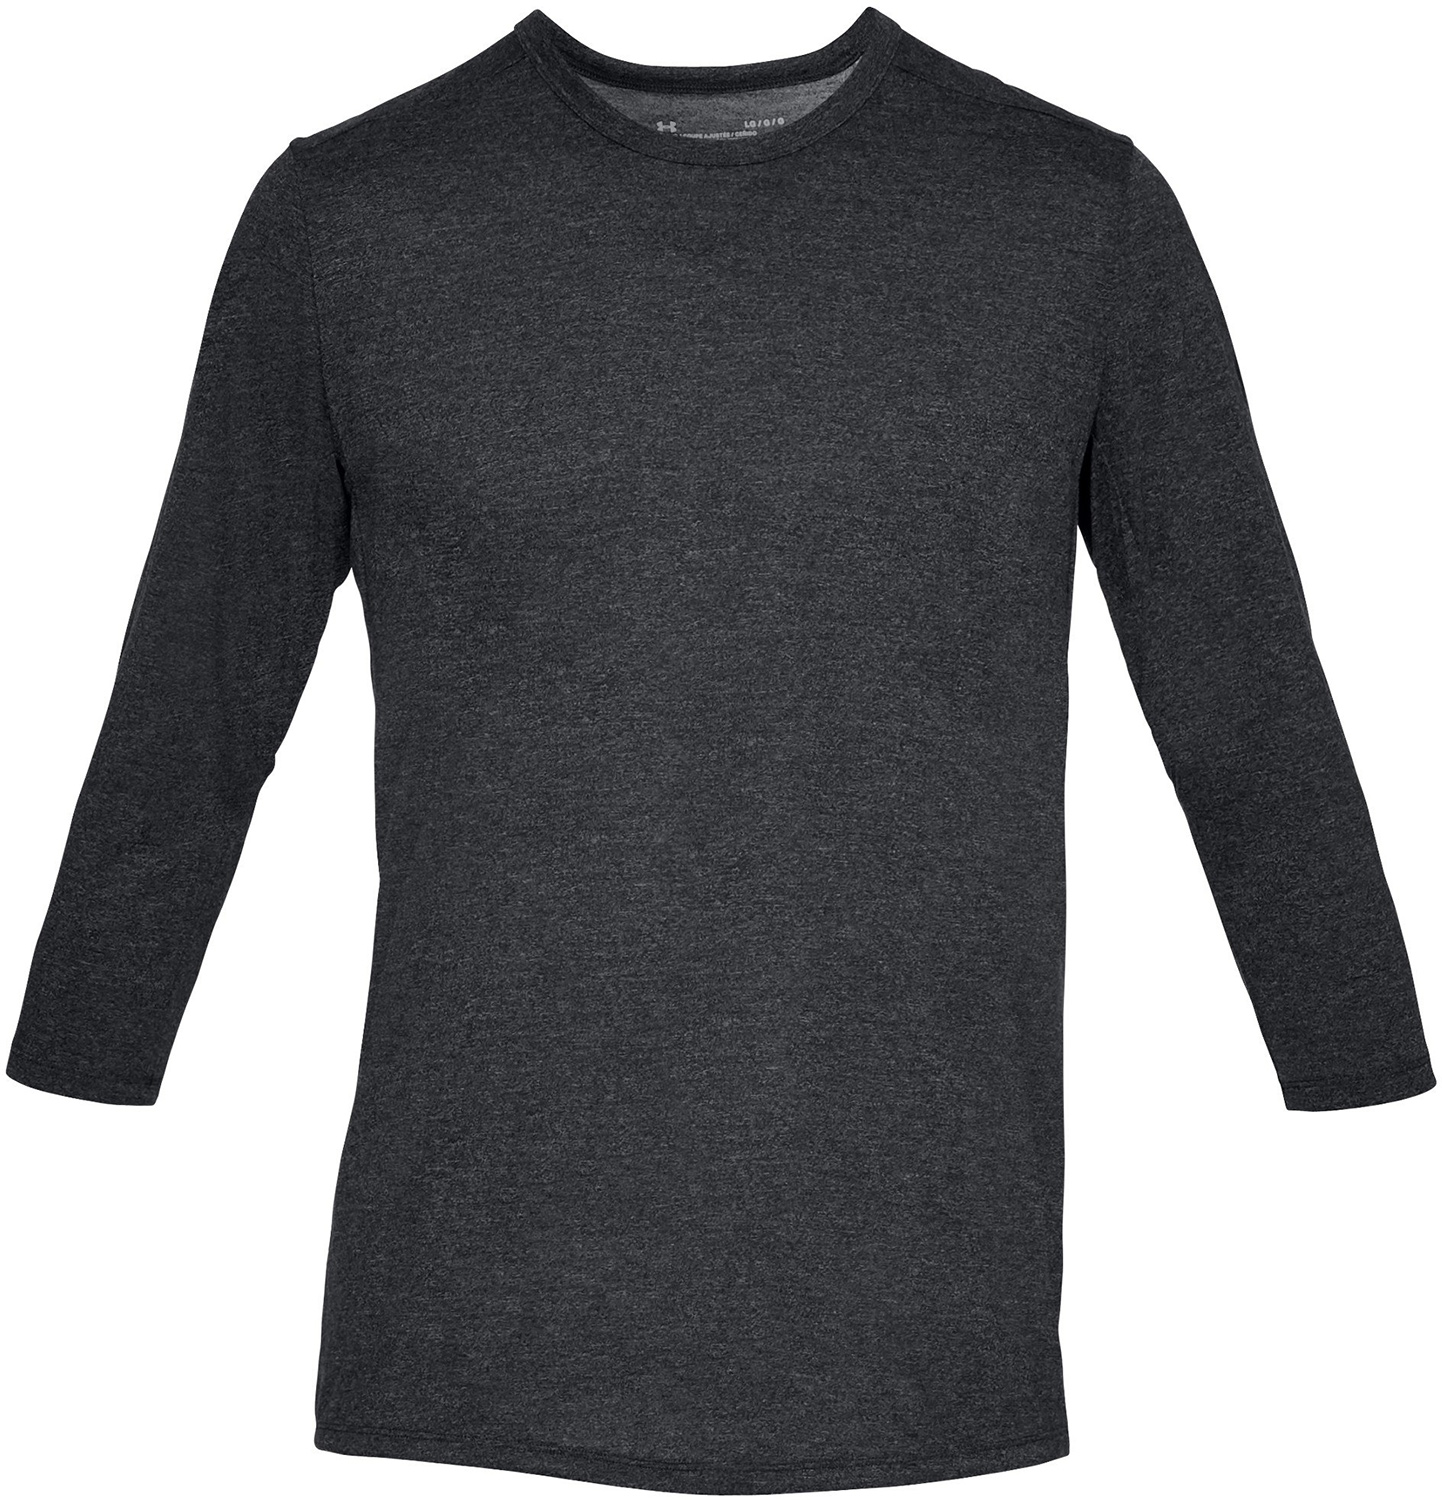 a2eac1860 Under Armour Siro 3/4 Sleeve Black - Ubrania męskie do squasha ...